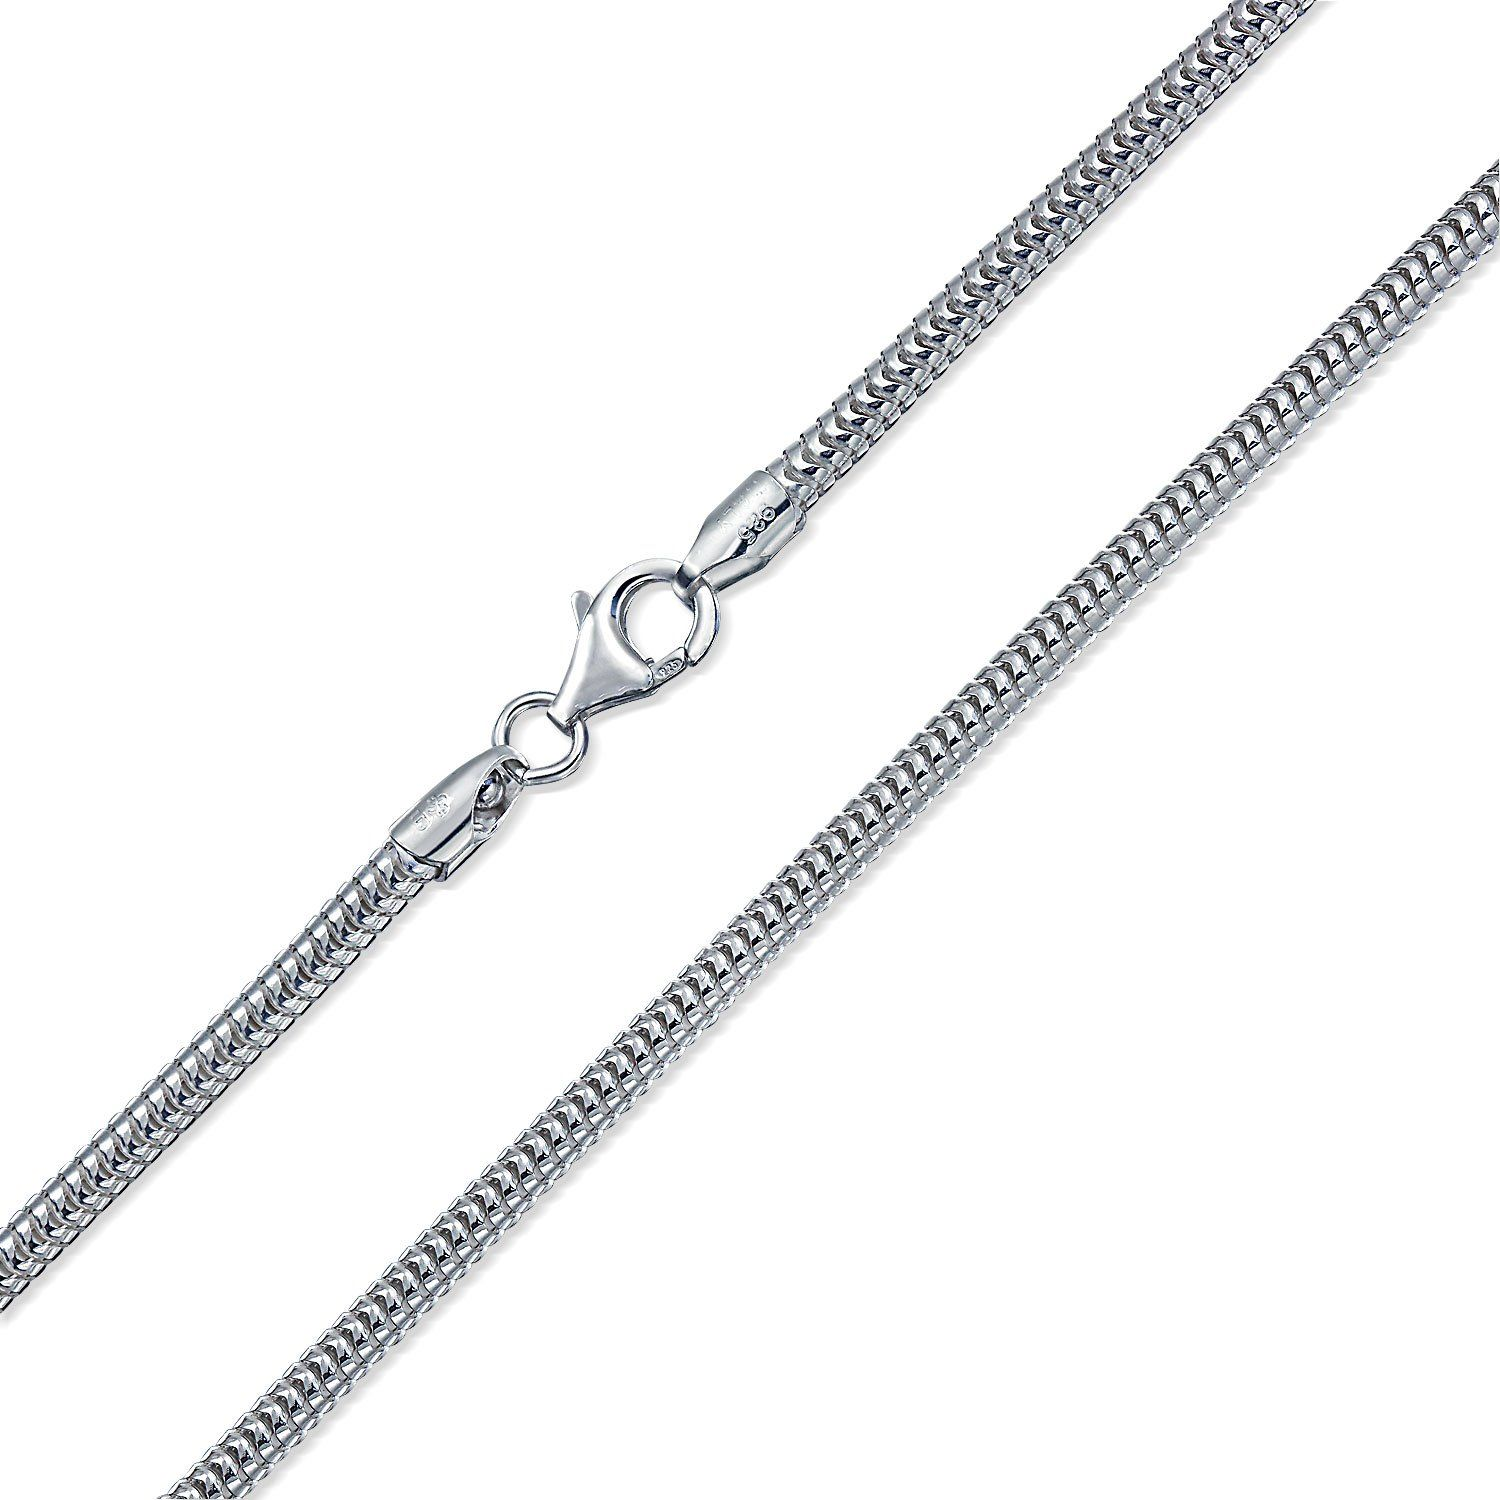 24inch rolo chain necklace wholesale 5PCS 925sterling solid silver 1MM 16inch